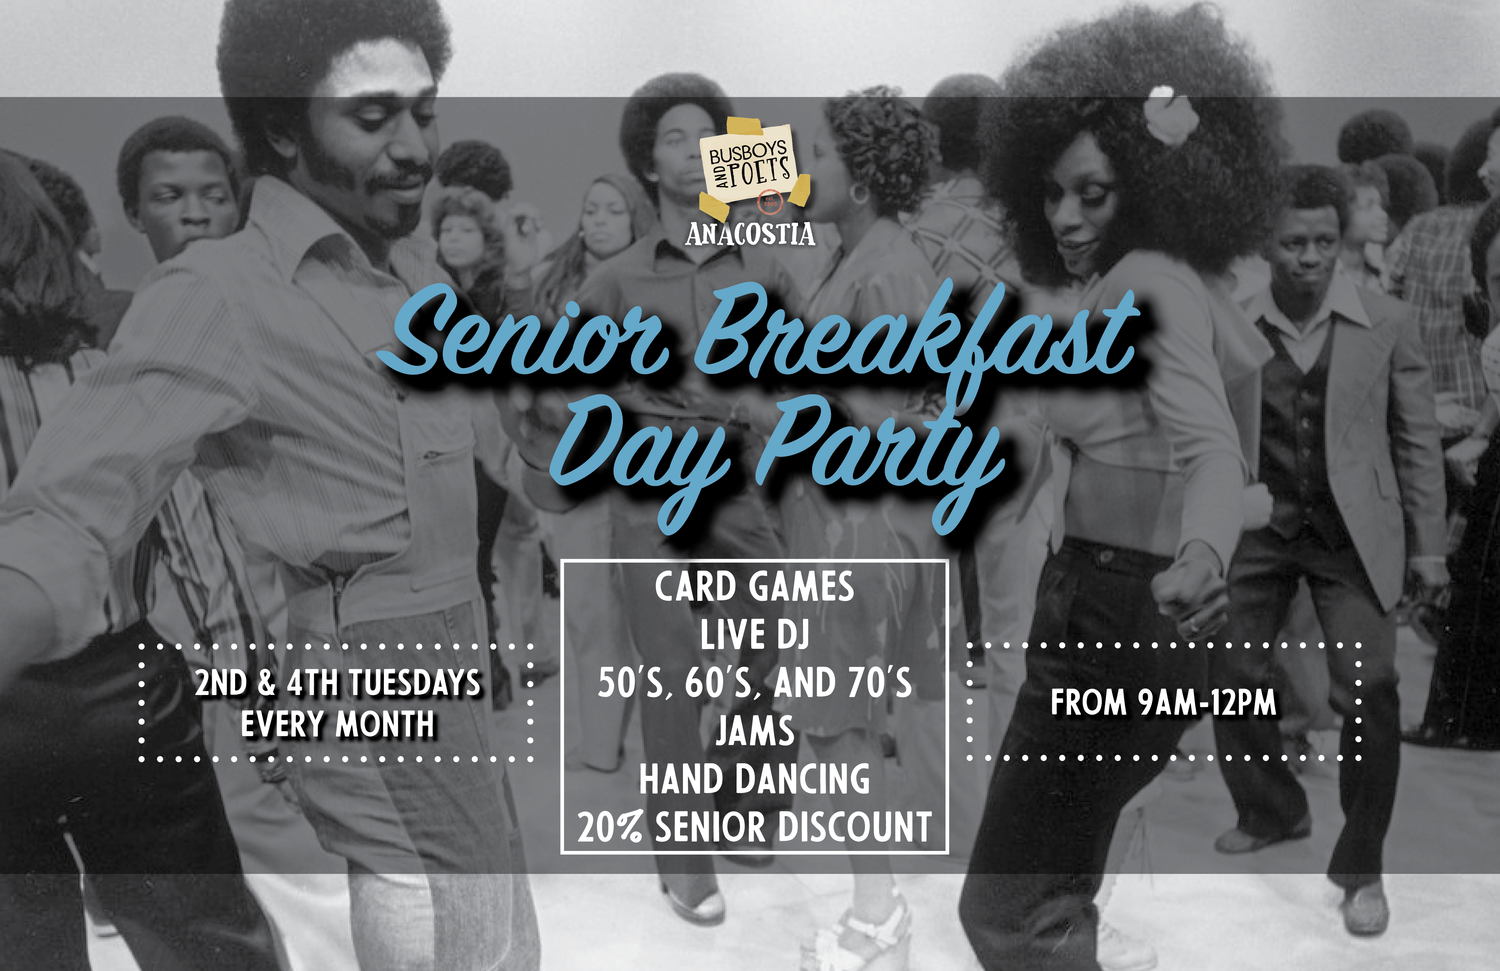 Senior+Breakfast+Day+Party+17x11+(1).png